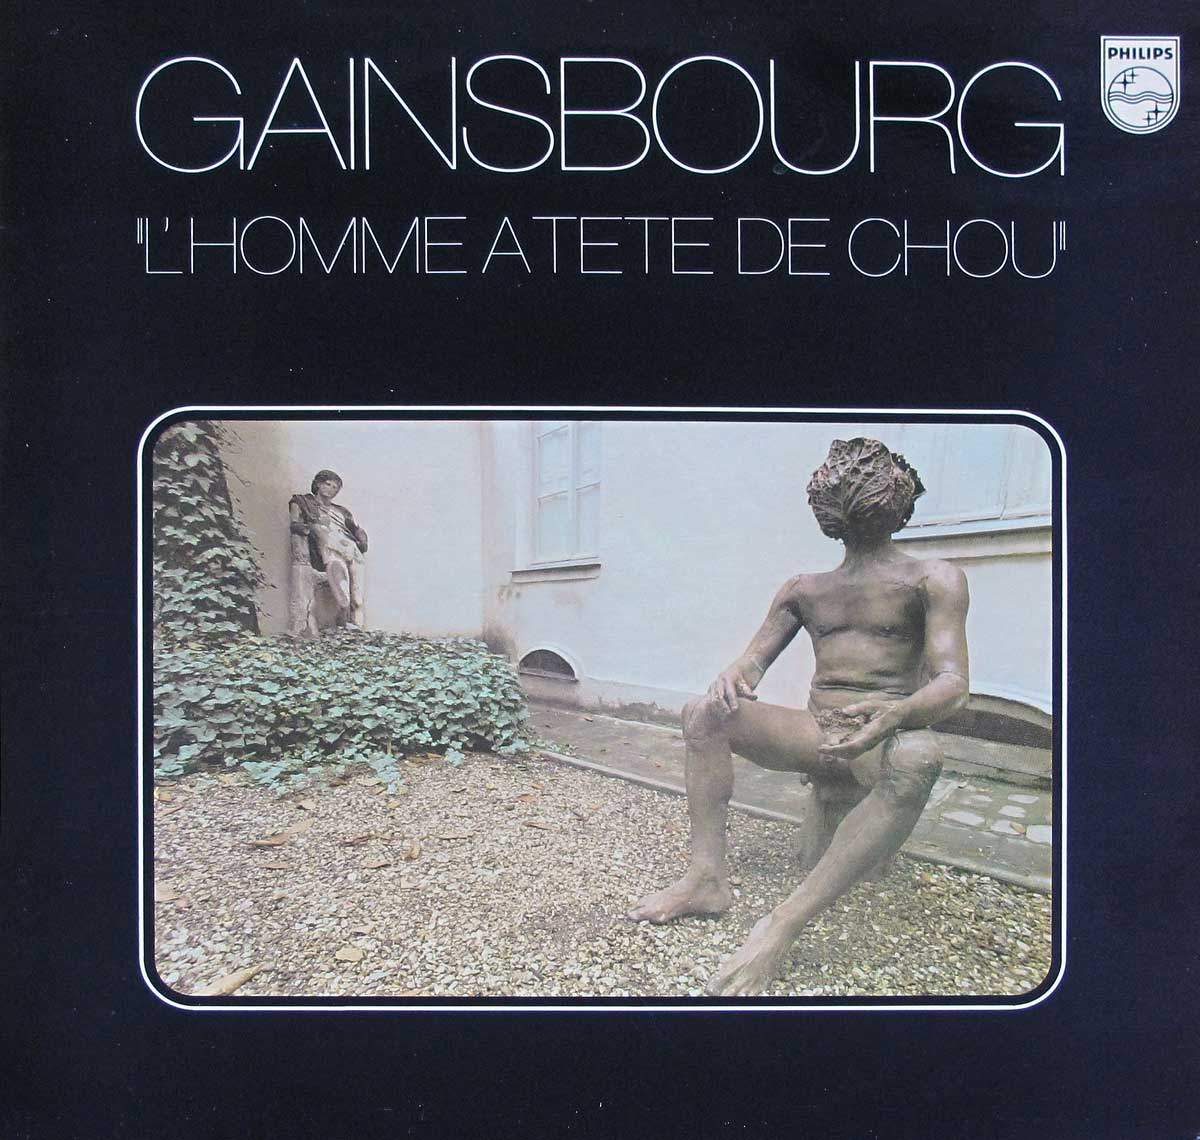 large photo of the album front cover of: SERGE GAINSBOURG - L'Homme a Tete de Chou